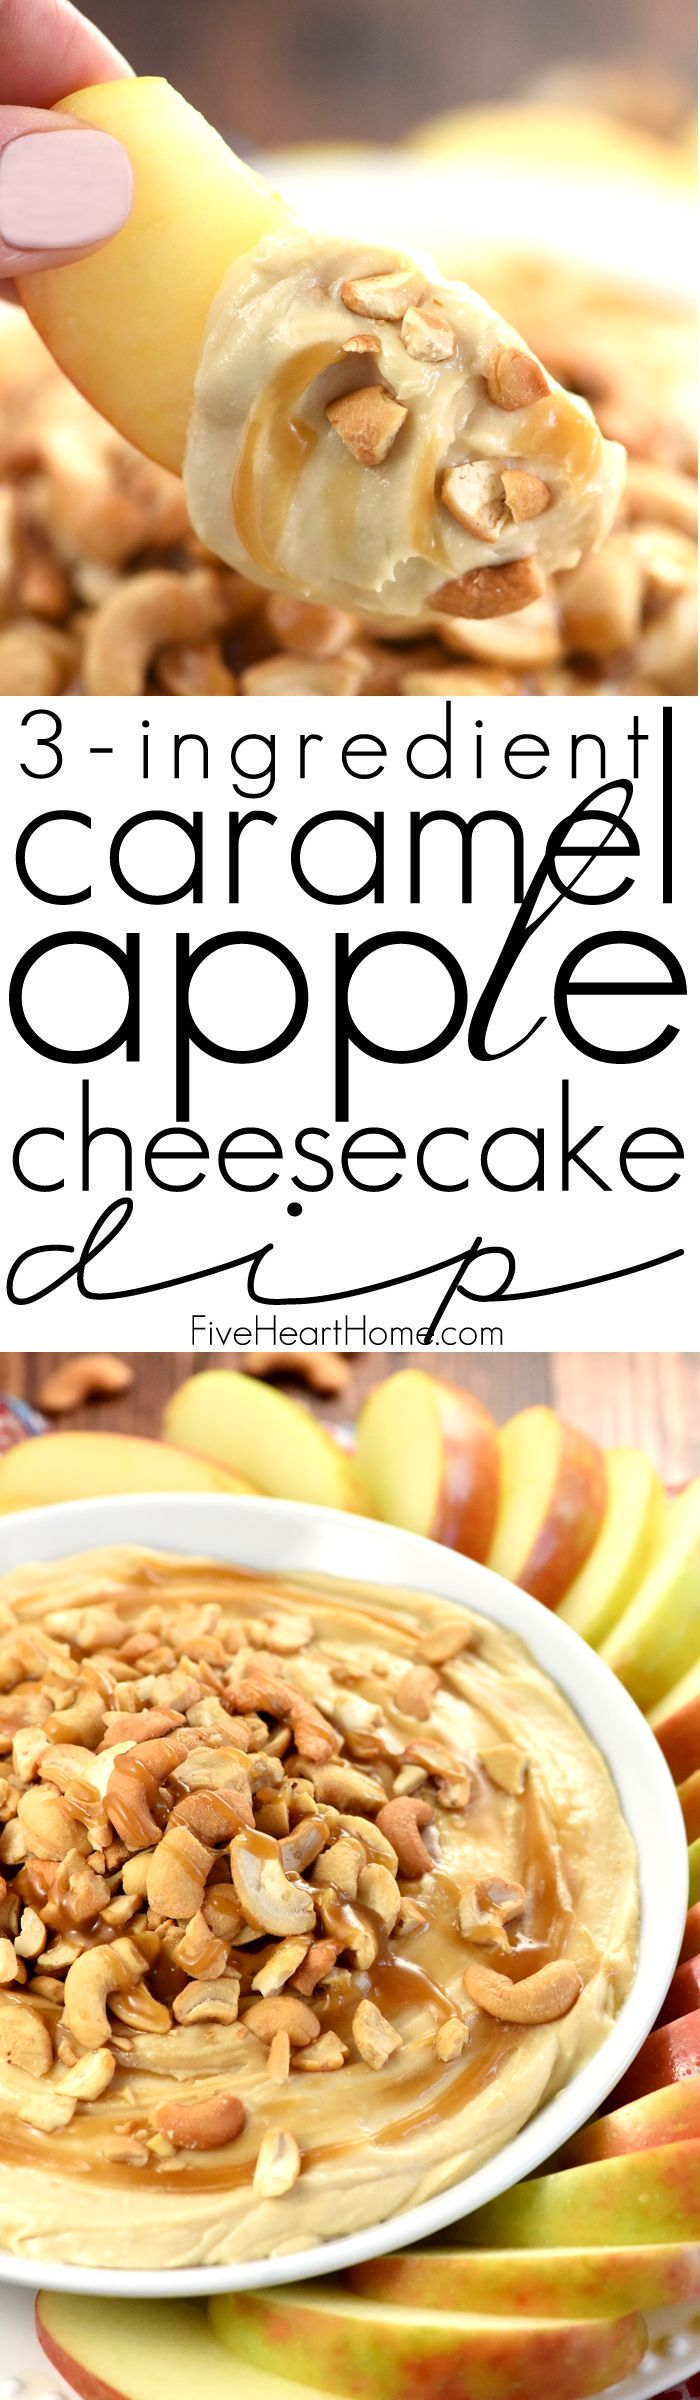 Caramel Apple Cheesecake Dip ~ requiring only three ingredients and a few minutes to assemble, this sweet and creamy dip is an effortless recipe for game day, Halloween parties, Thanksgiving dessert, or just about any special occasion or get-together!   FiveHeartHome.com